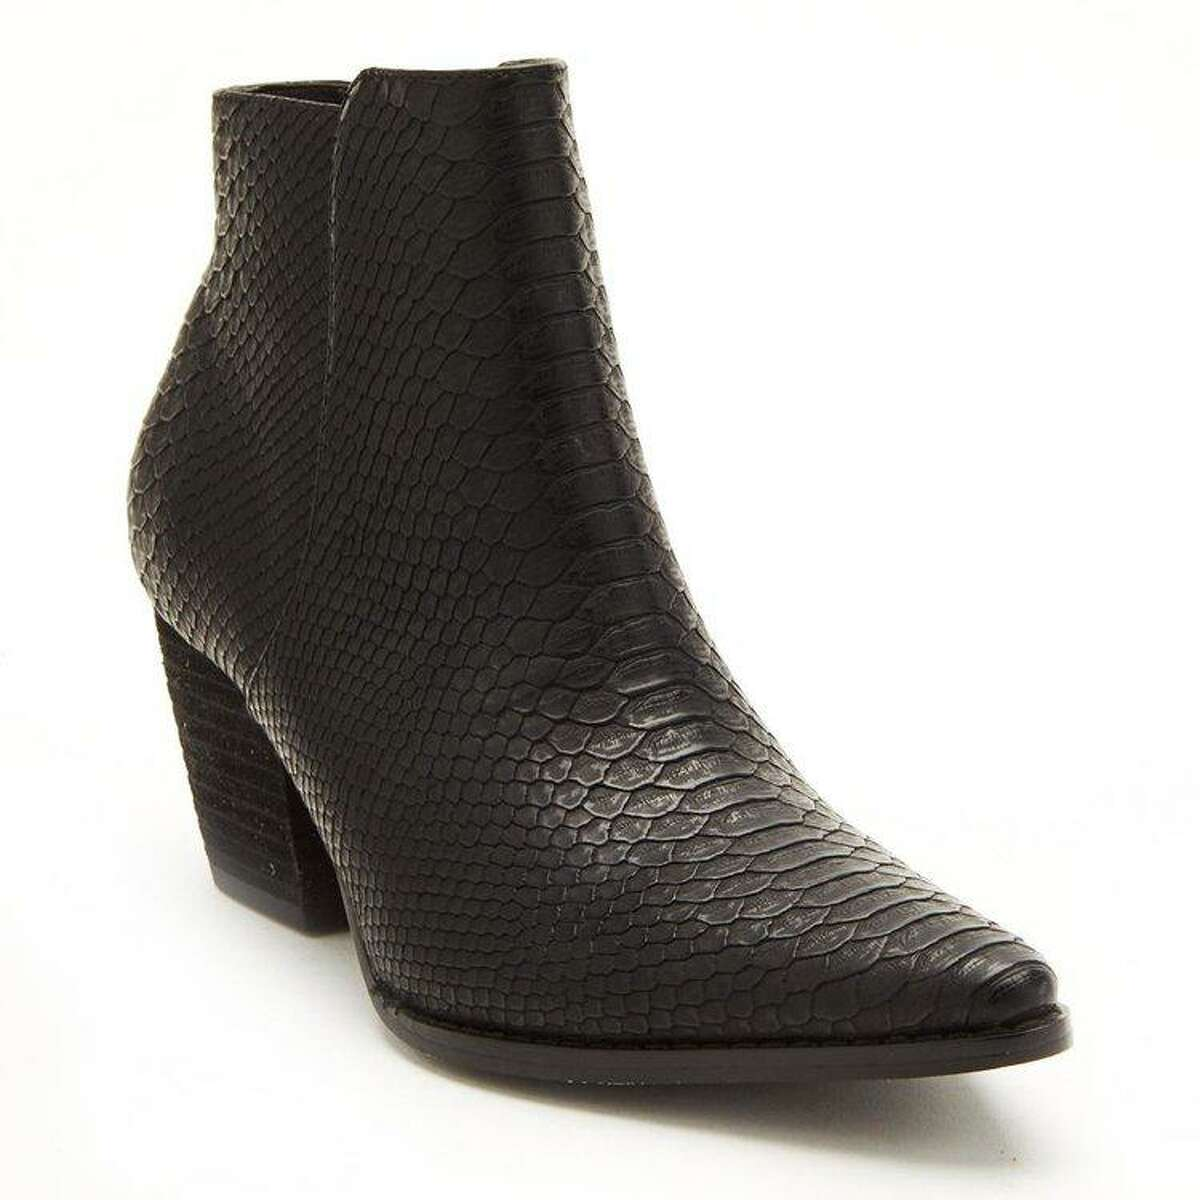 5. Astoria Ankle Booties, Wildflower ThreadsFor the fashionista, these Astoria Booties are a go-anywhere wardrobe staple. The boots feature a snake-print upper layer of raw leather, but the inside of the boot is lined with soft padding, so it's comfortable for all-day wear. Owner Alex Orlando, a graduate of James E. Taylor High School, recommends pairing the booties with skinny jeans, corduroys or a short dress.Astoria Ankle Booties, $89.95Wildflower Threads5625 Third St.www.bemywildflower.com